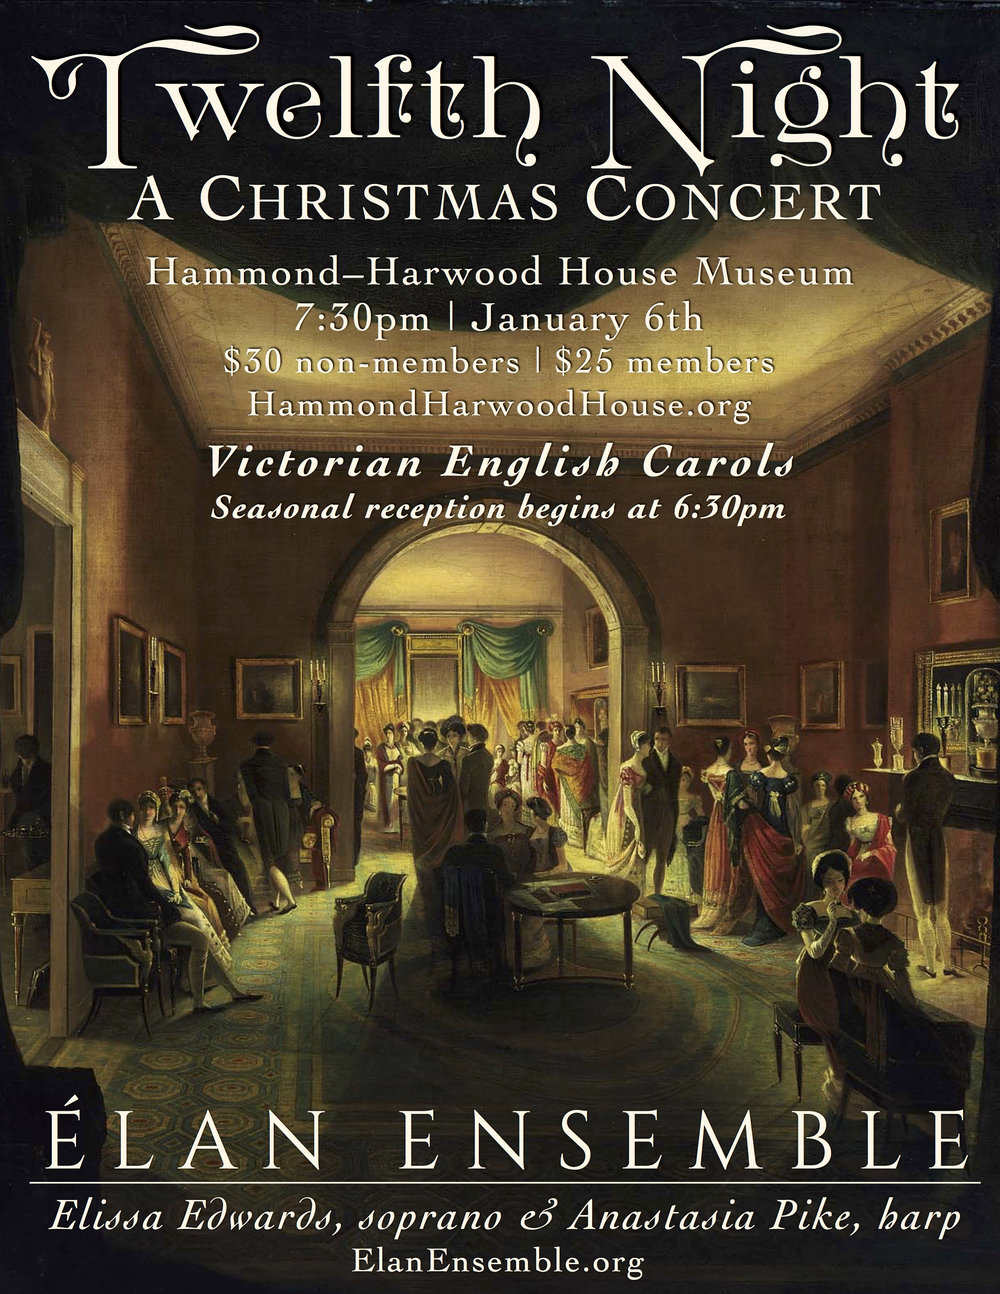 ELAN - twelfth night concert poster 2.jpg